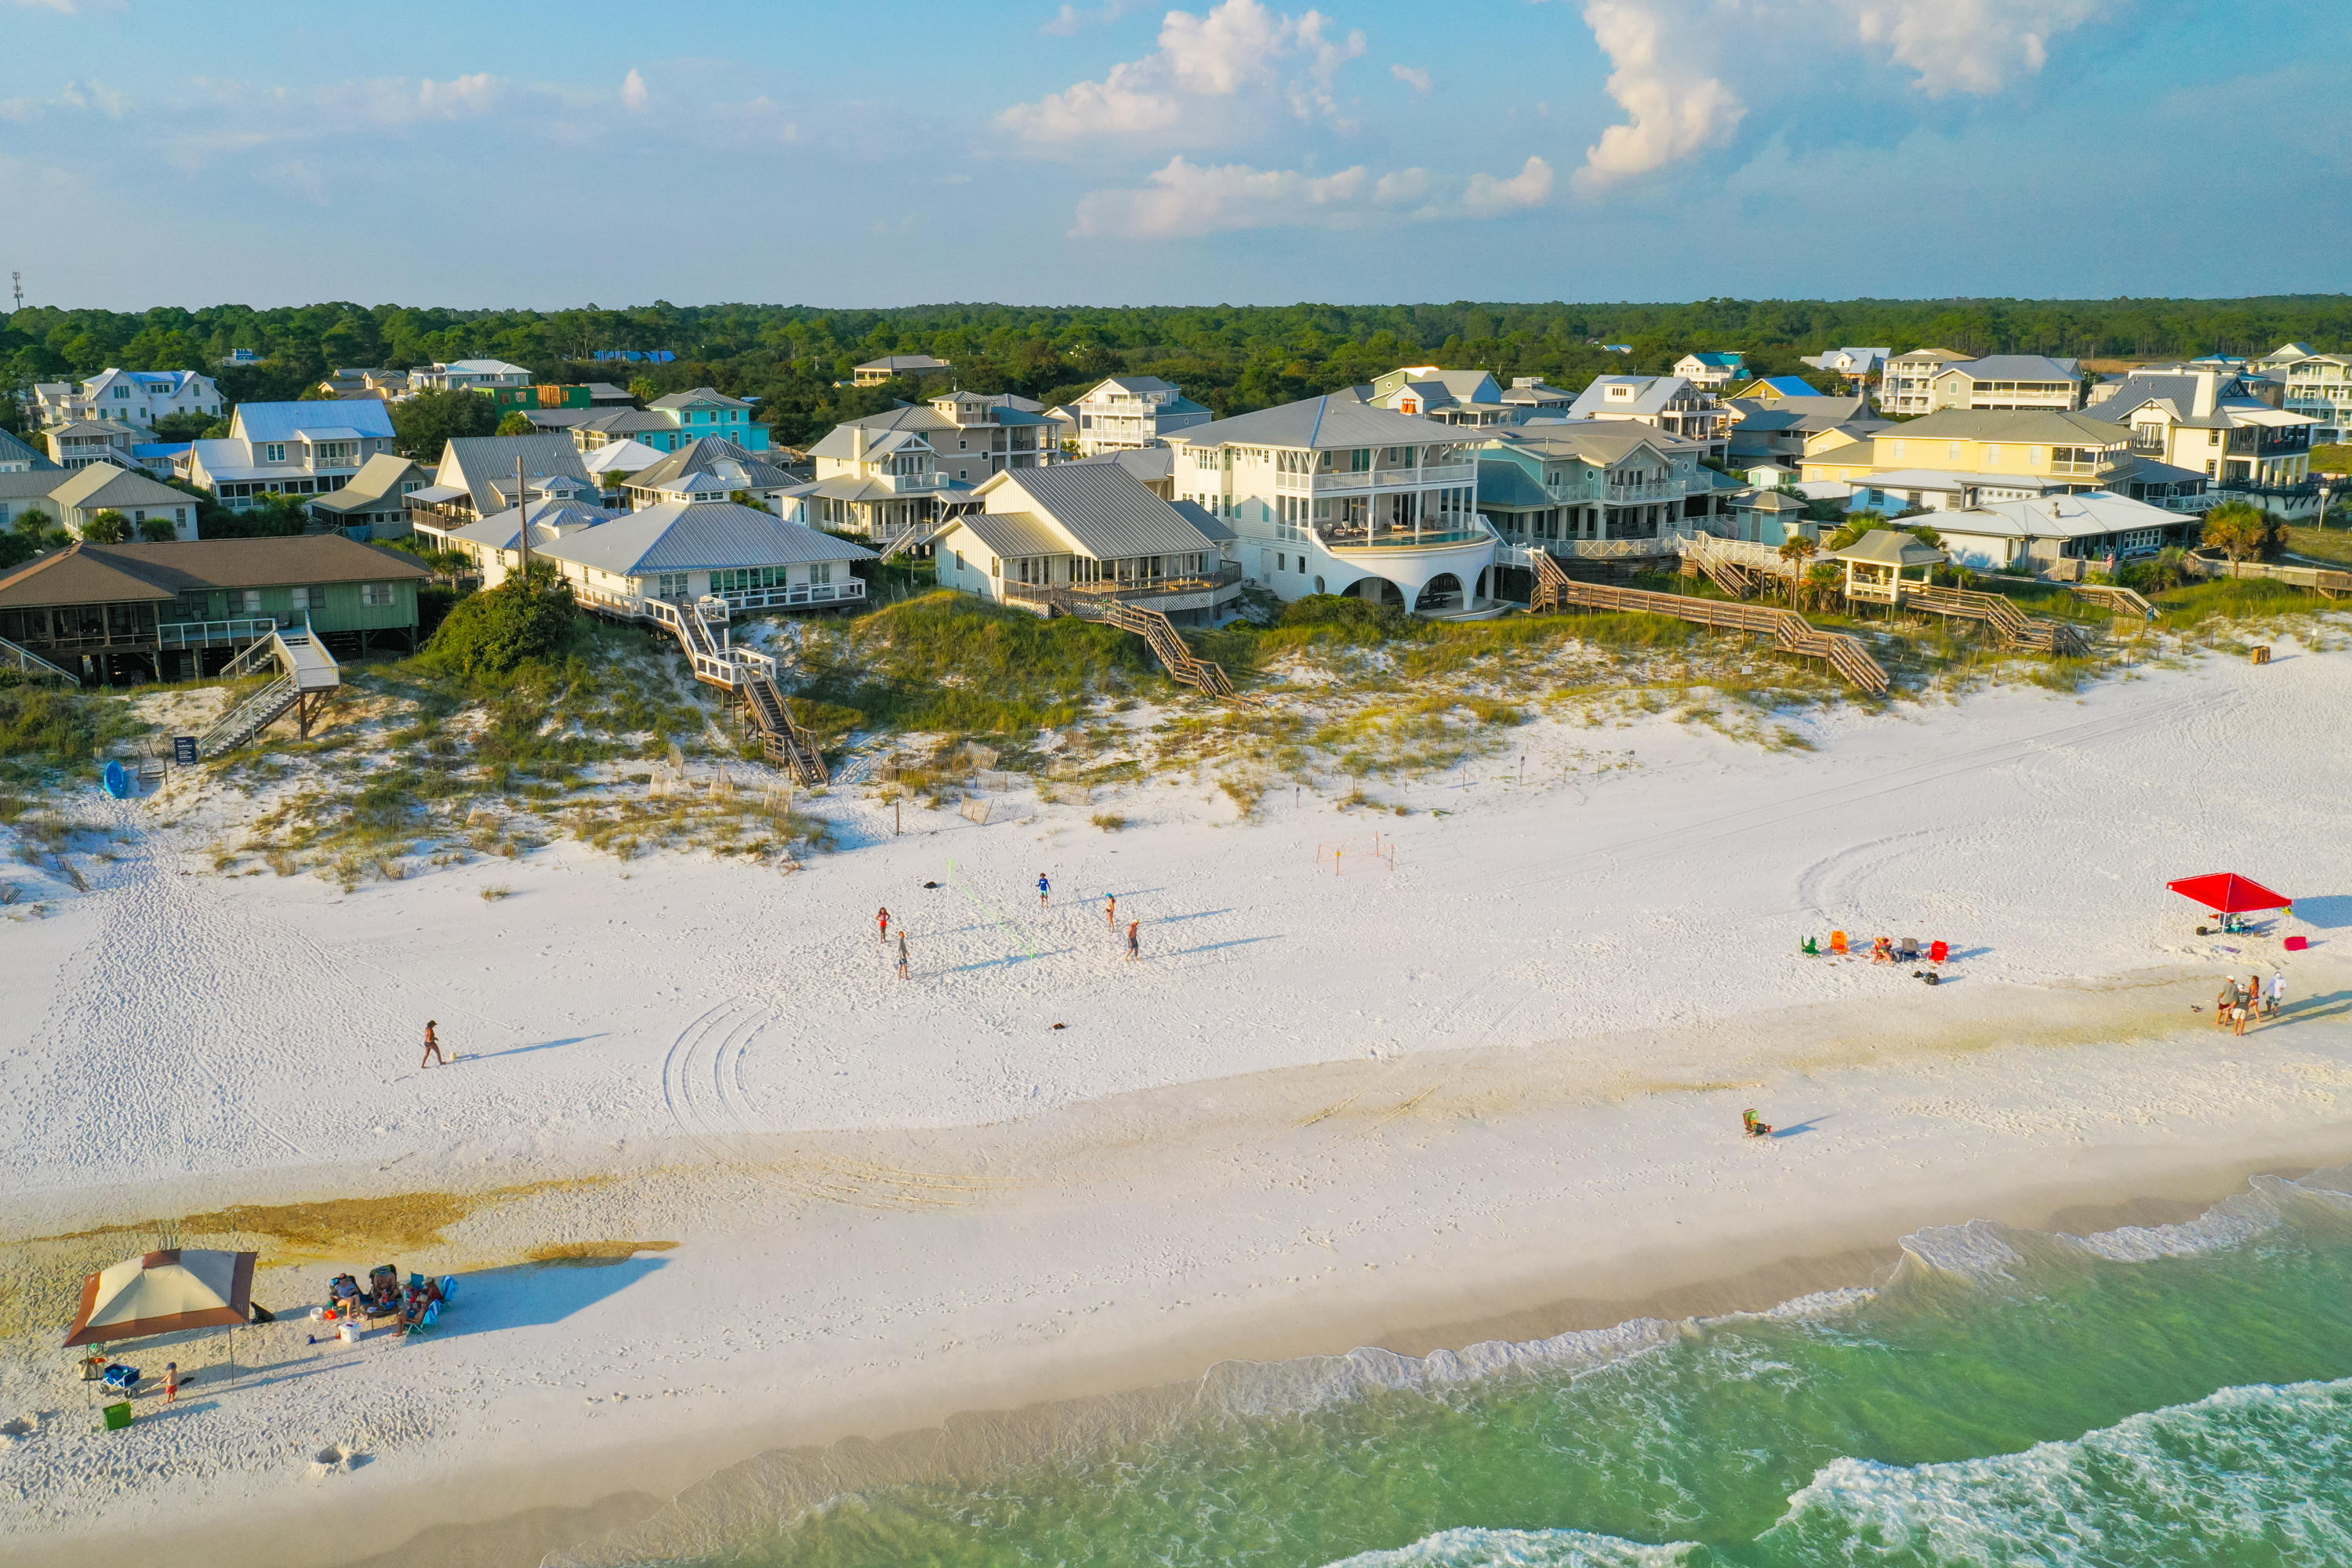 A 3 Bedroom 3 Bedroom Grayton Beach Home